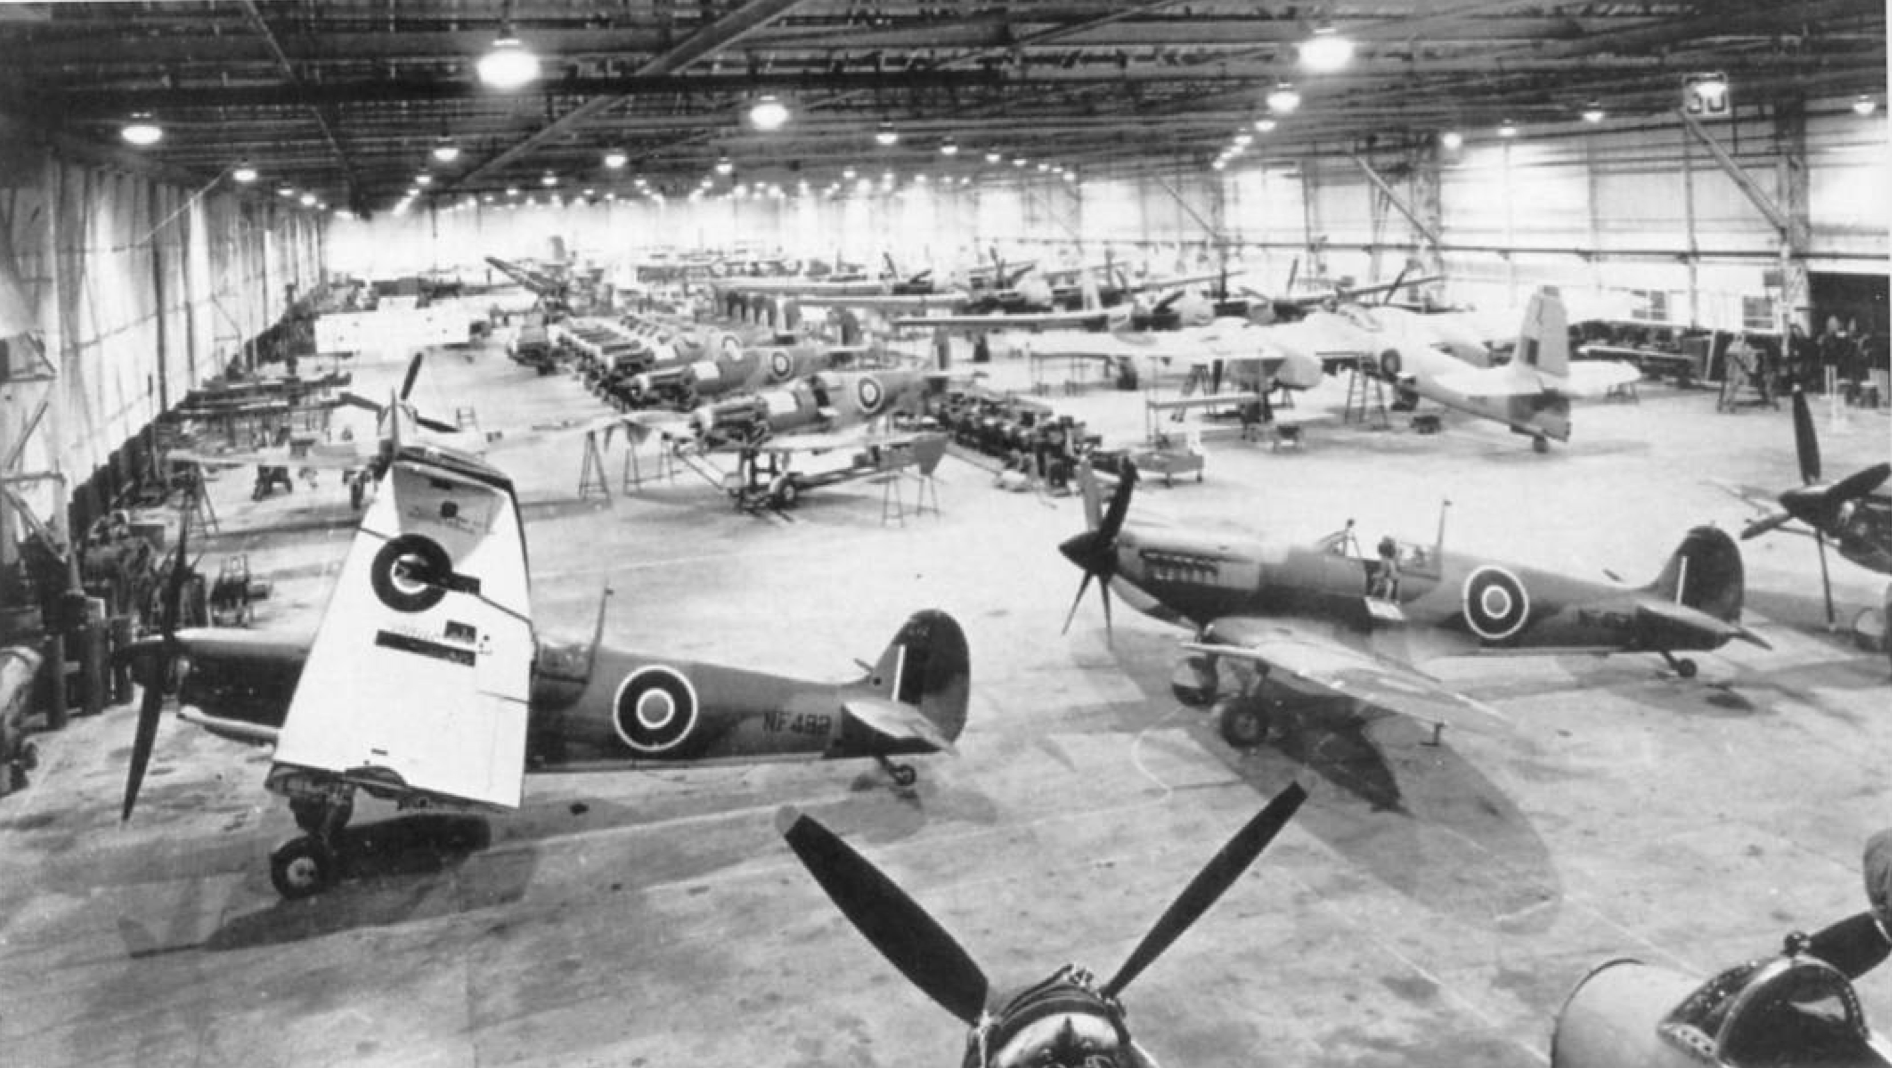 Seafire IIIs under construction in a Westland factory. Also evident are early versions of the twin-engine Welkin high-altitude fighter.